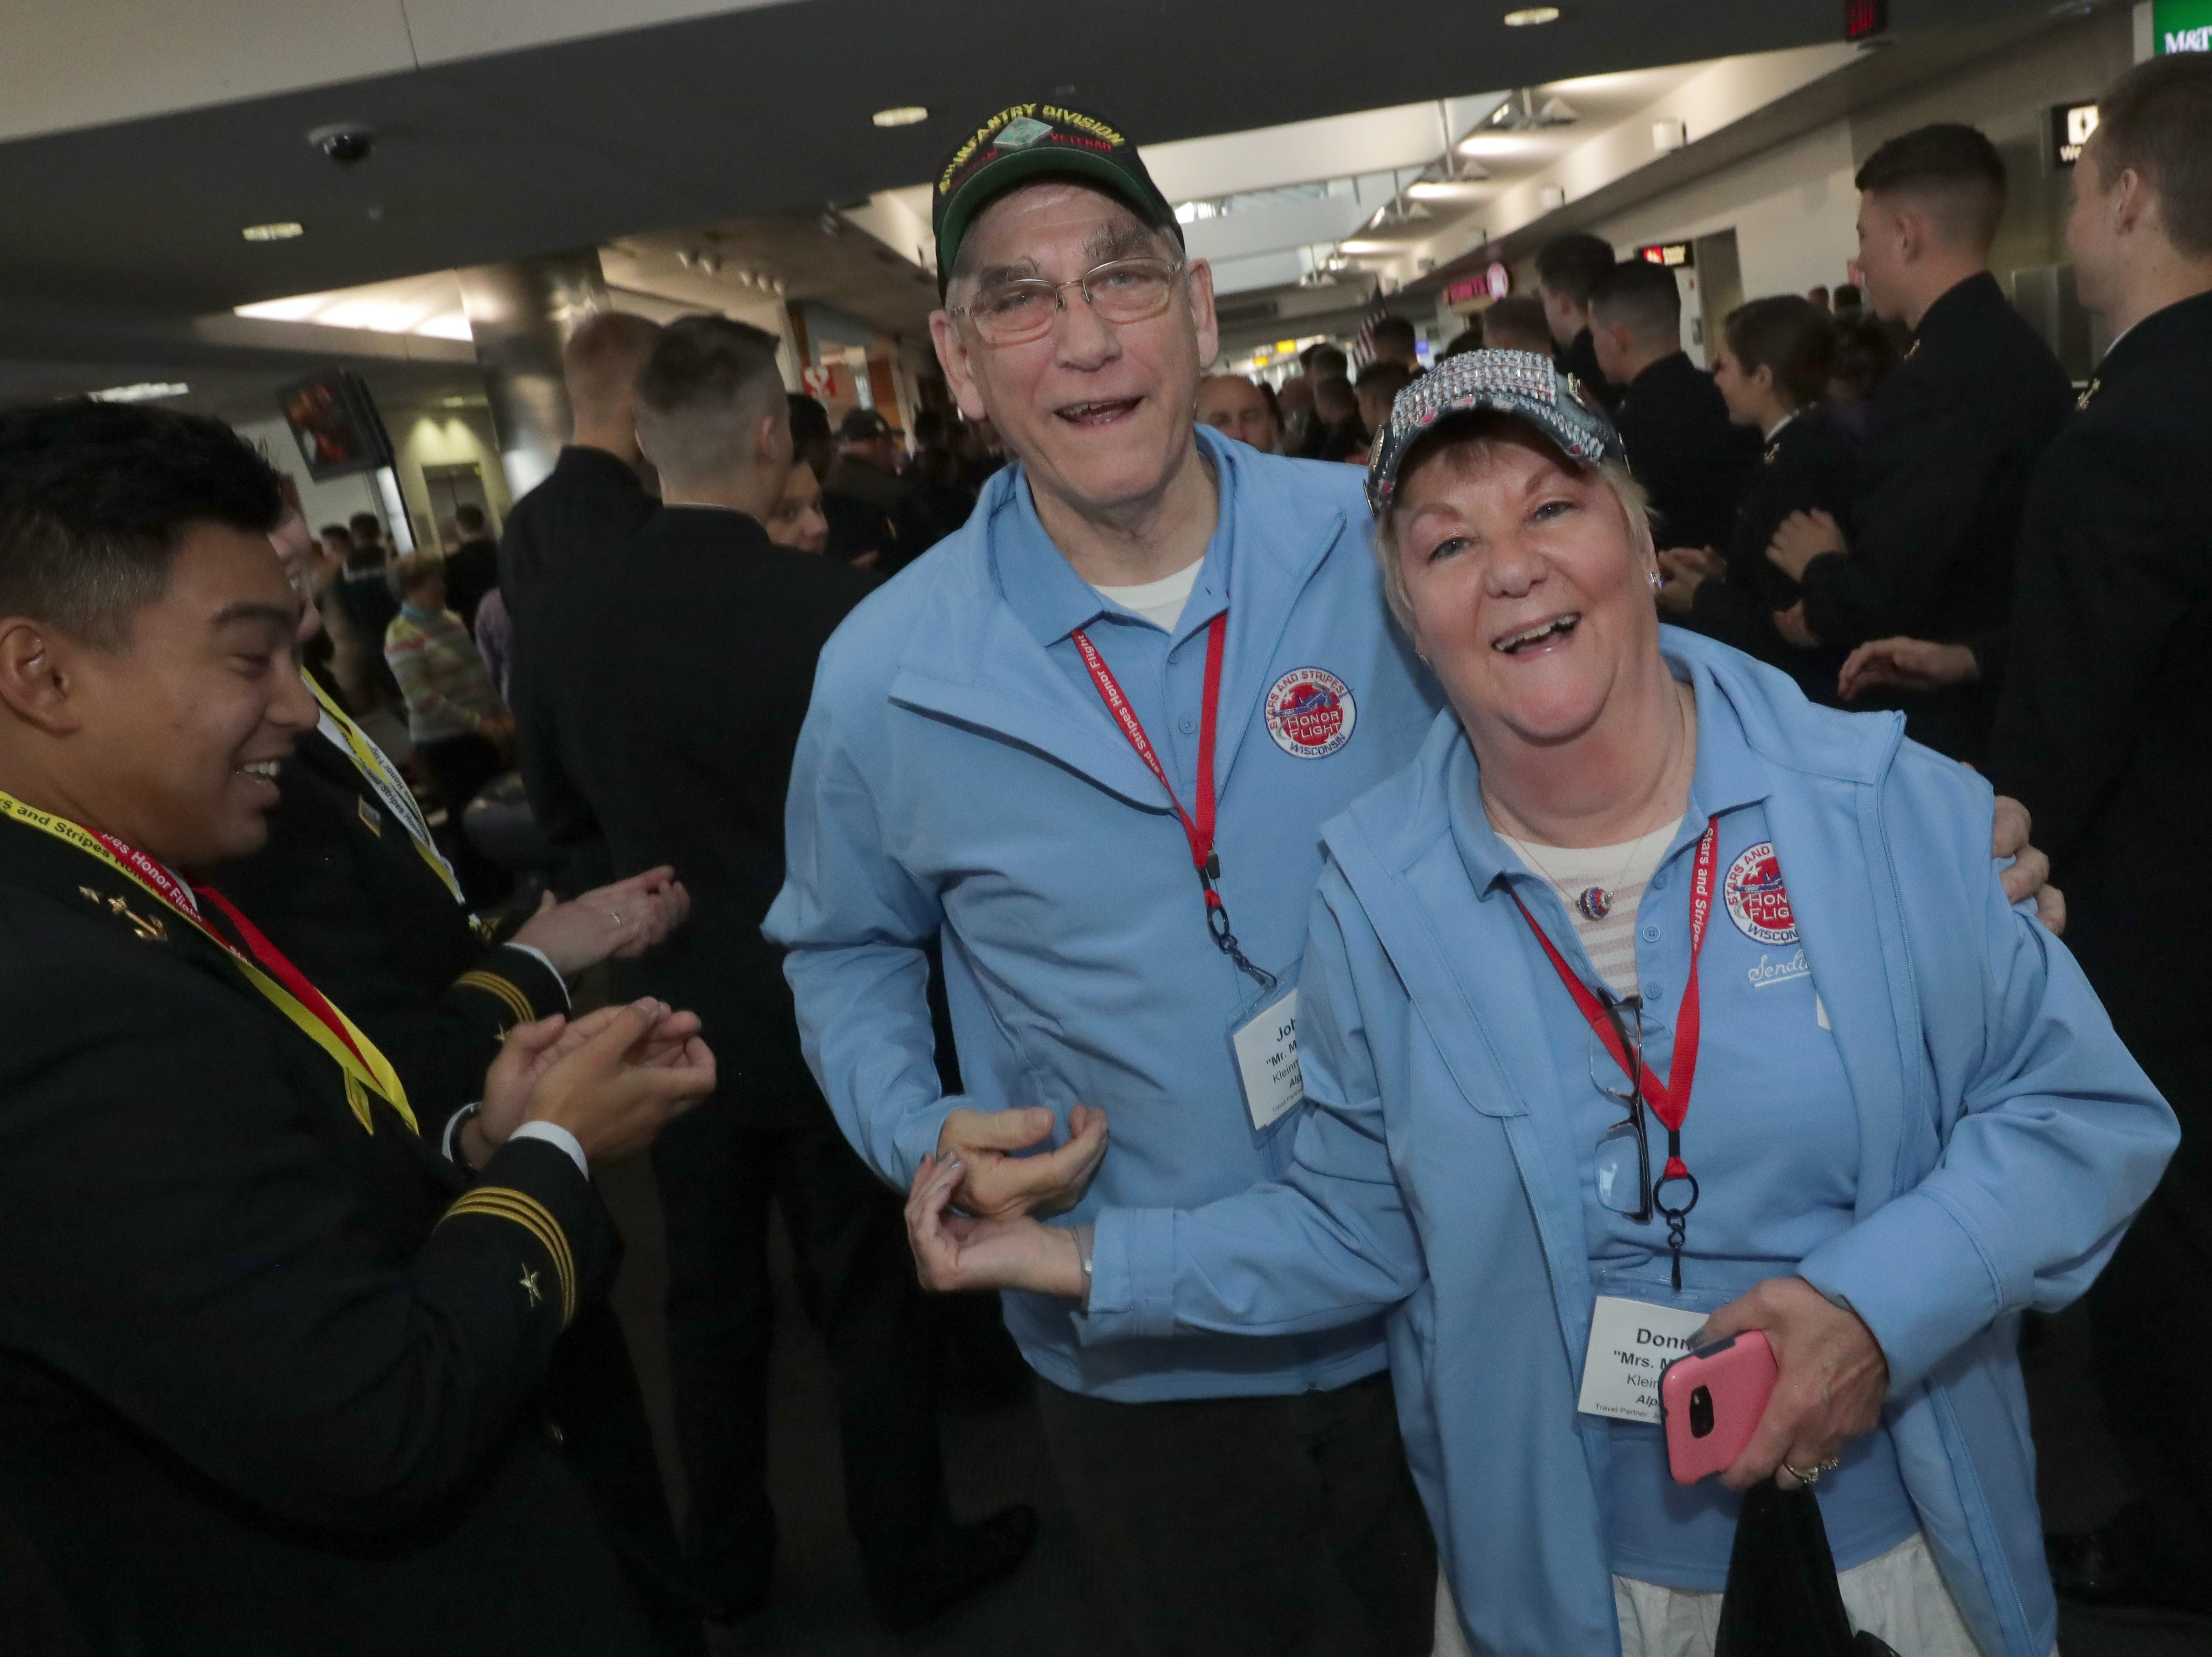 Vietnam veterans Donna Kleinmaus and her husband, John, of West Bend, smile at the greeting they received. The two served together in the U.S. Army.